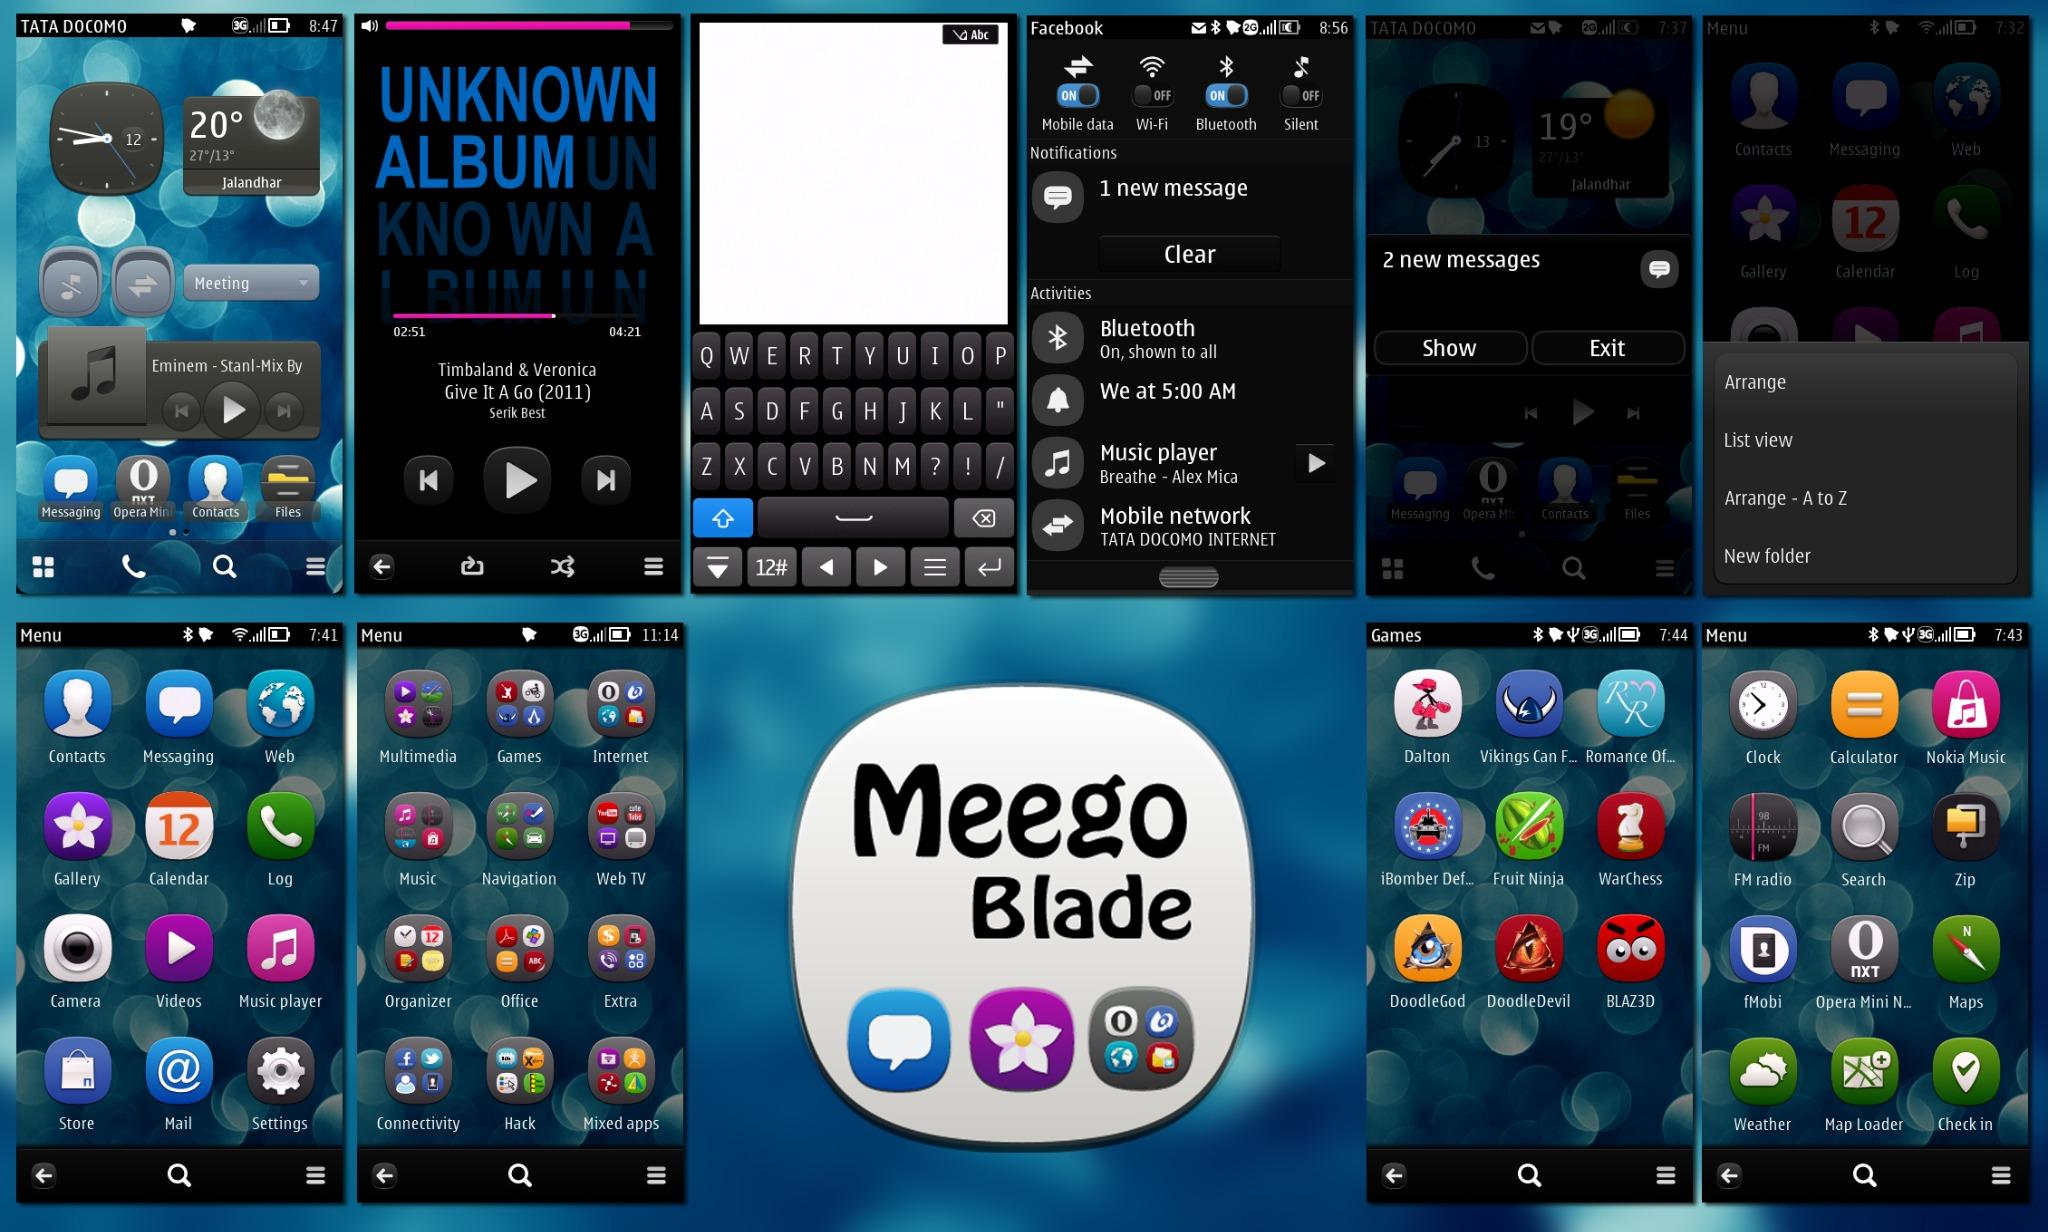 Theme Nokia Belle MeeGo by Blade